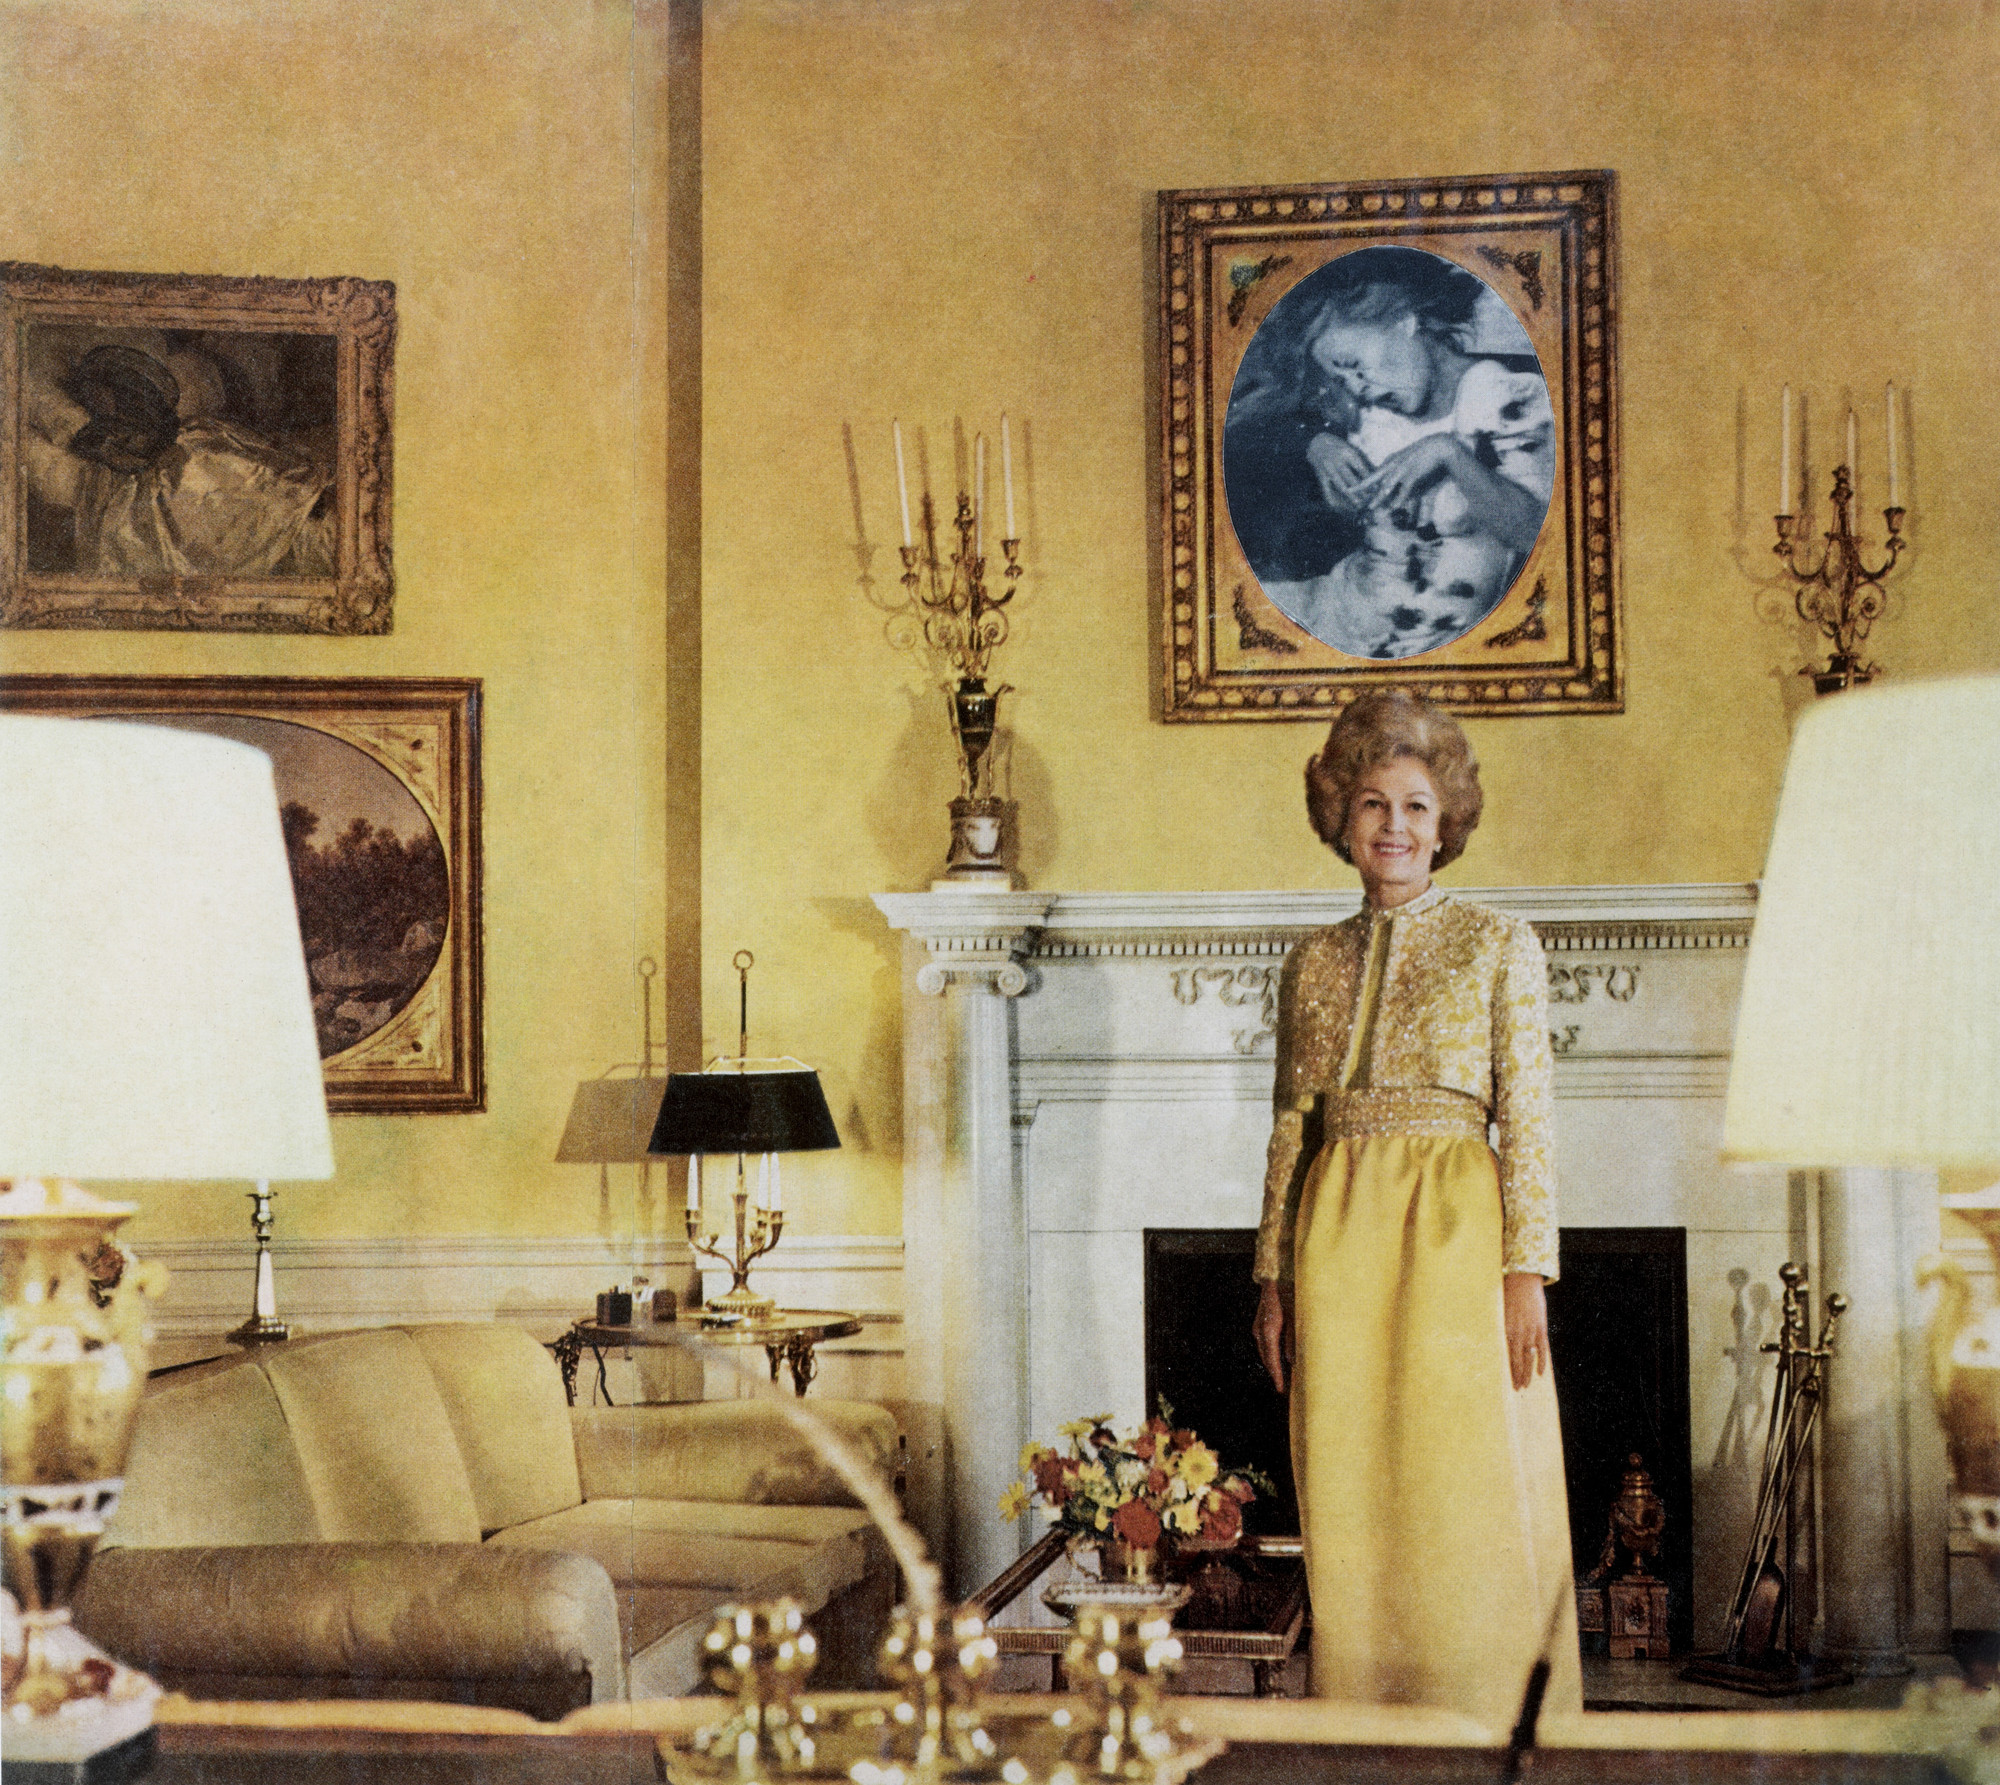 Martha Rosler. First Lady (Pat Nixon) from the series House Beautiful: Bringing the War Home. c. 1967-72